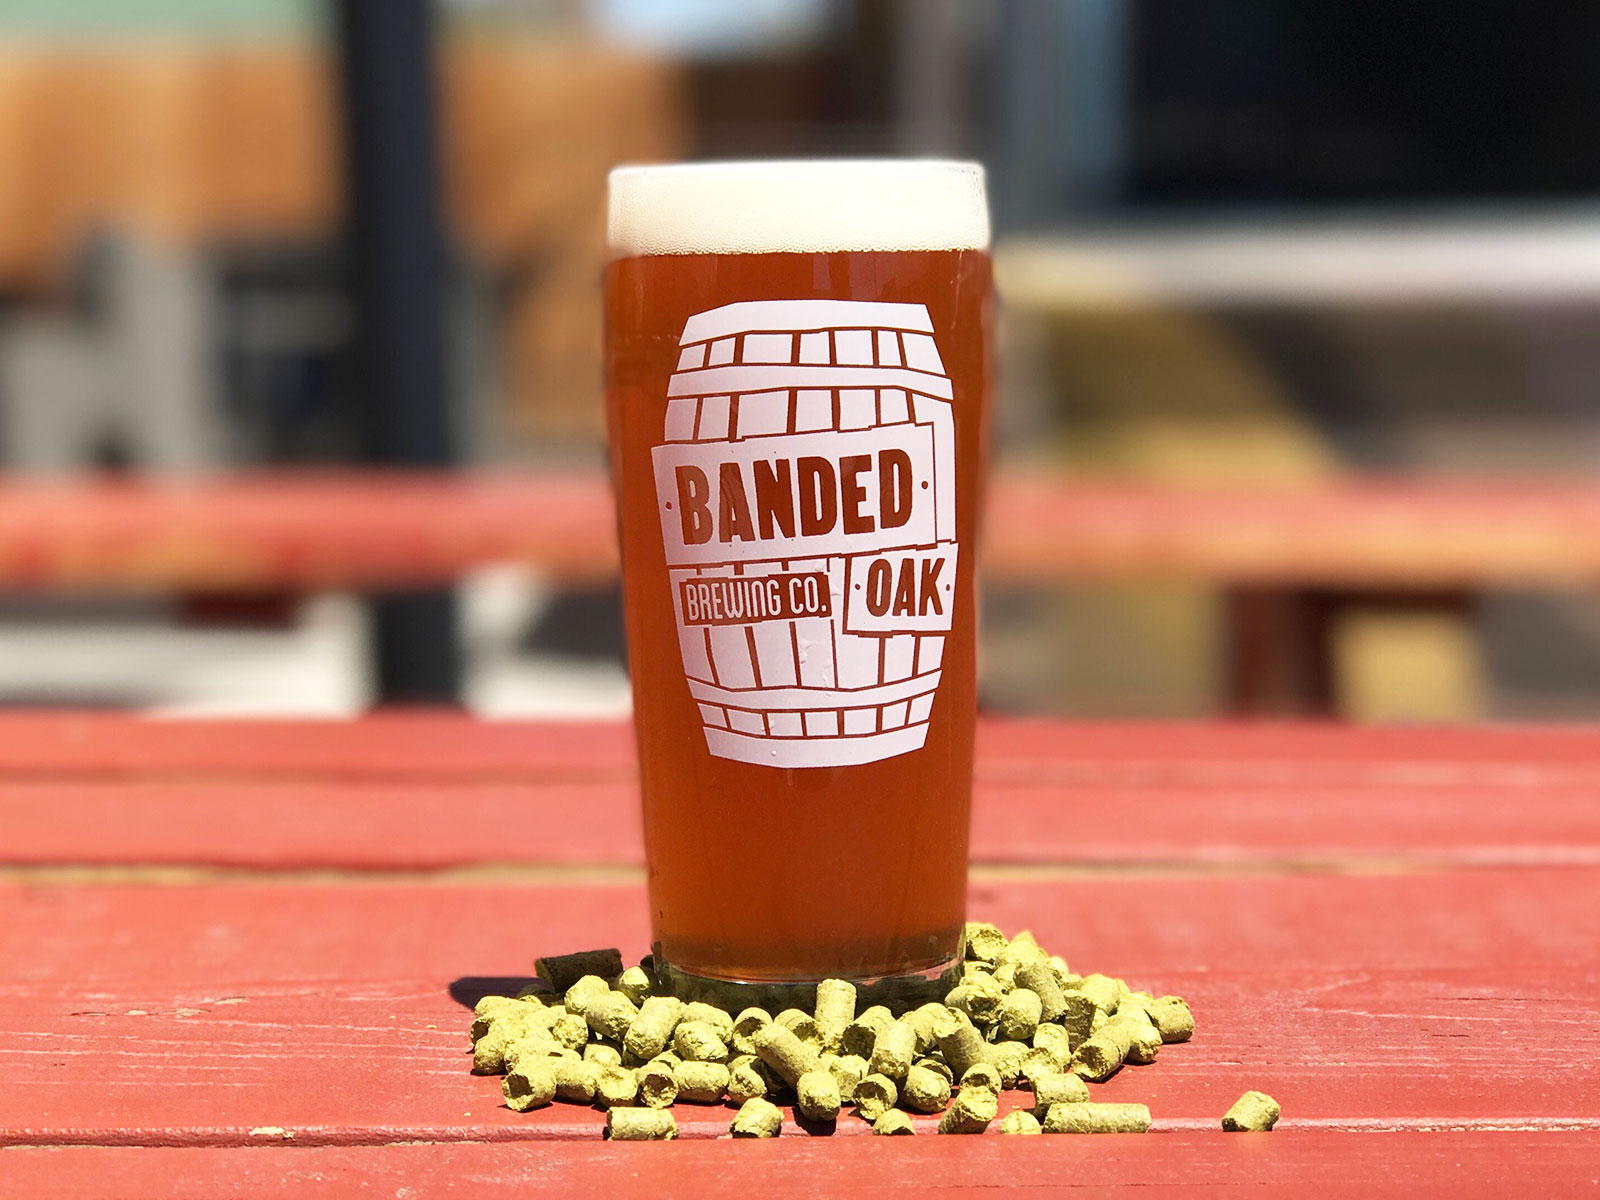 Three Very Good Denver Breweries The Locals Don't Want You to Know About